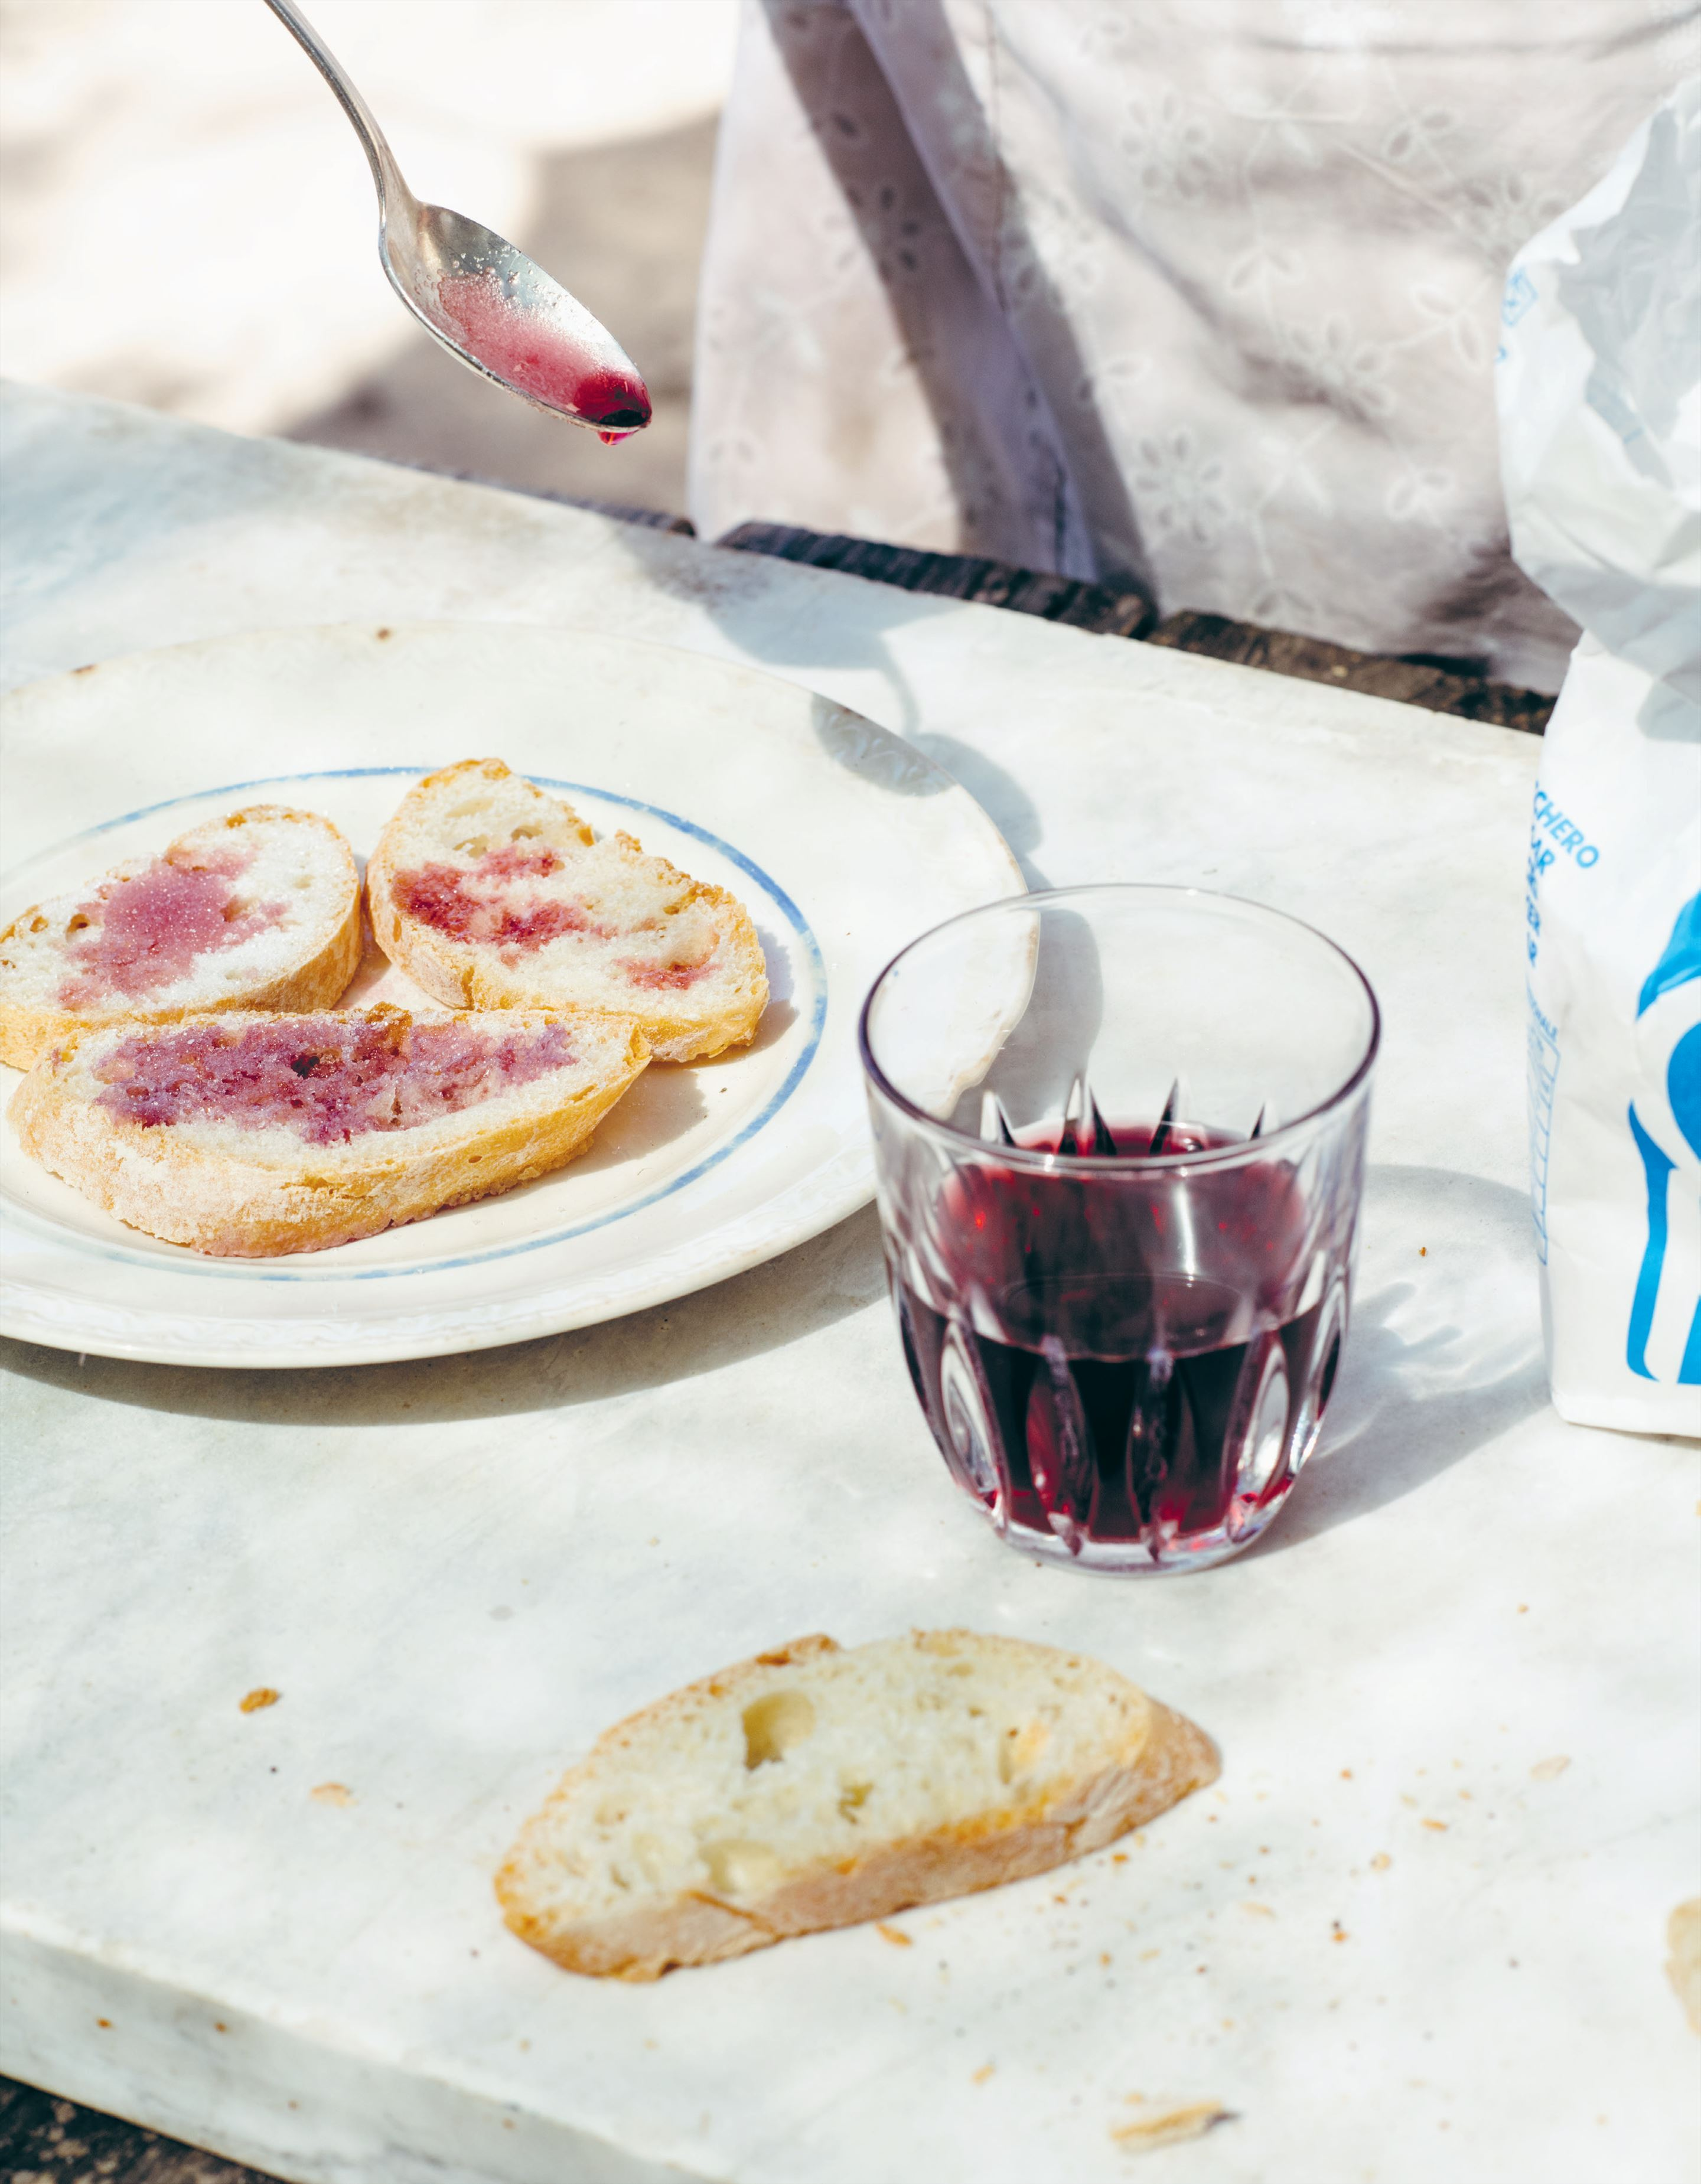 Bread, wine and sugar